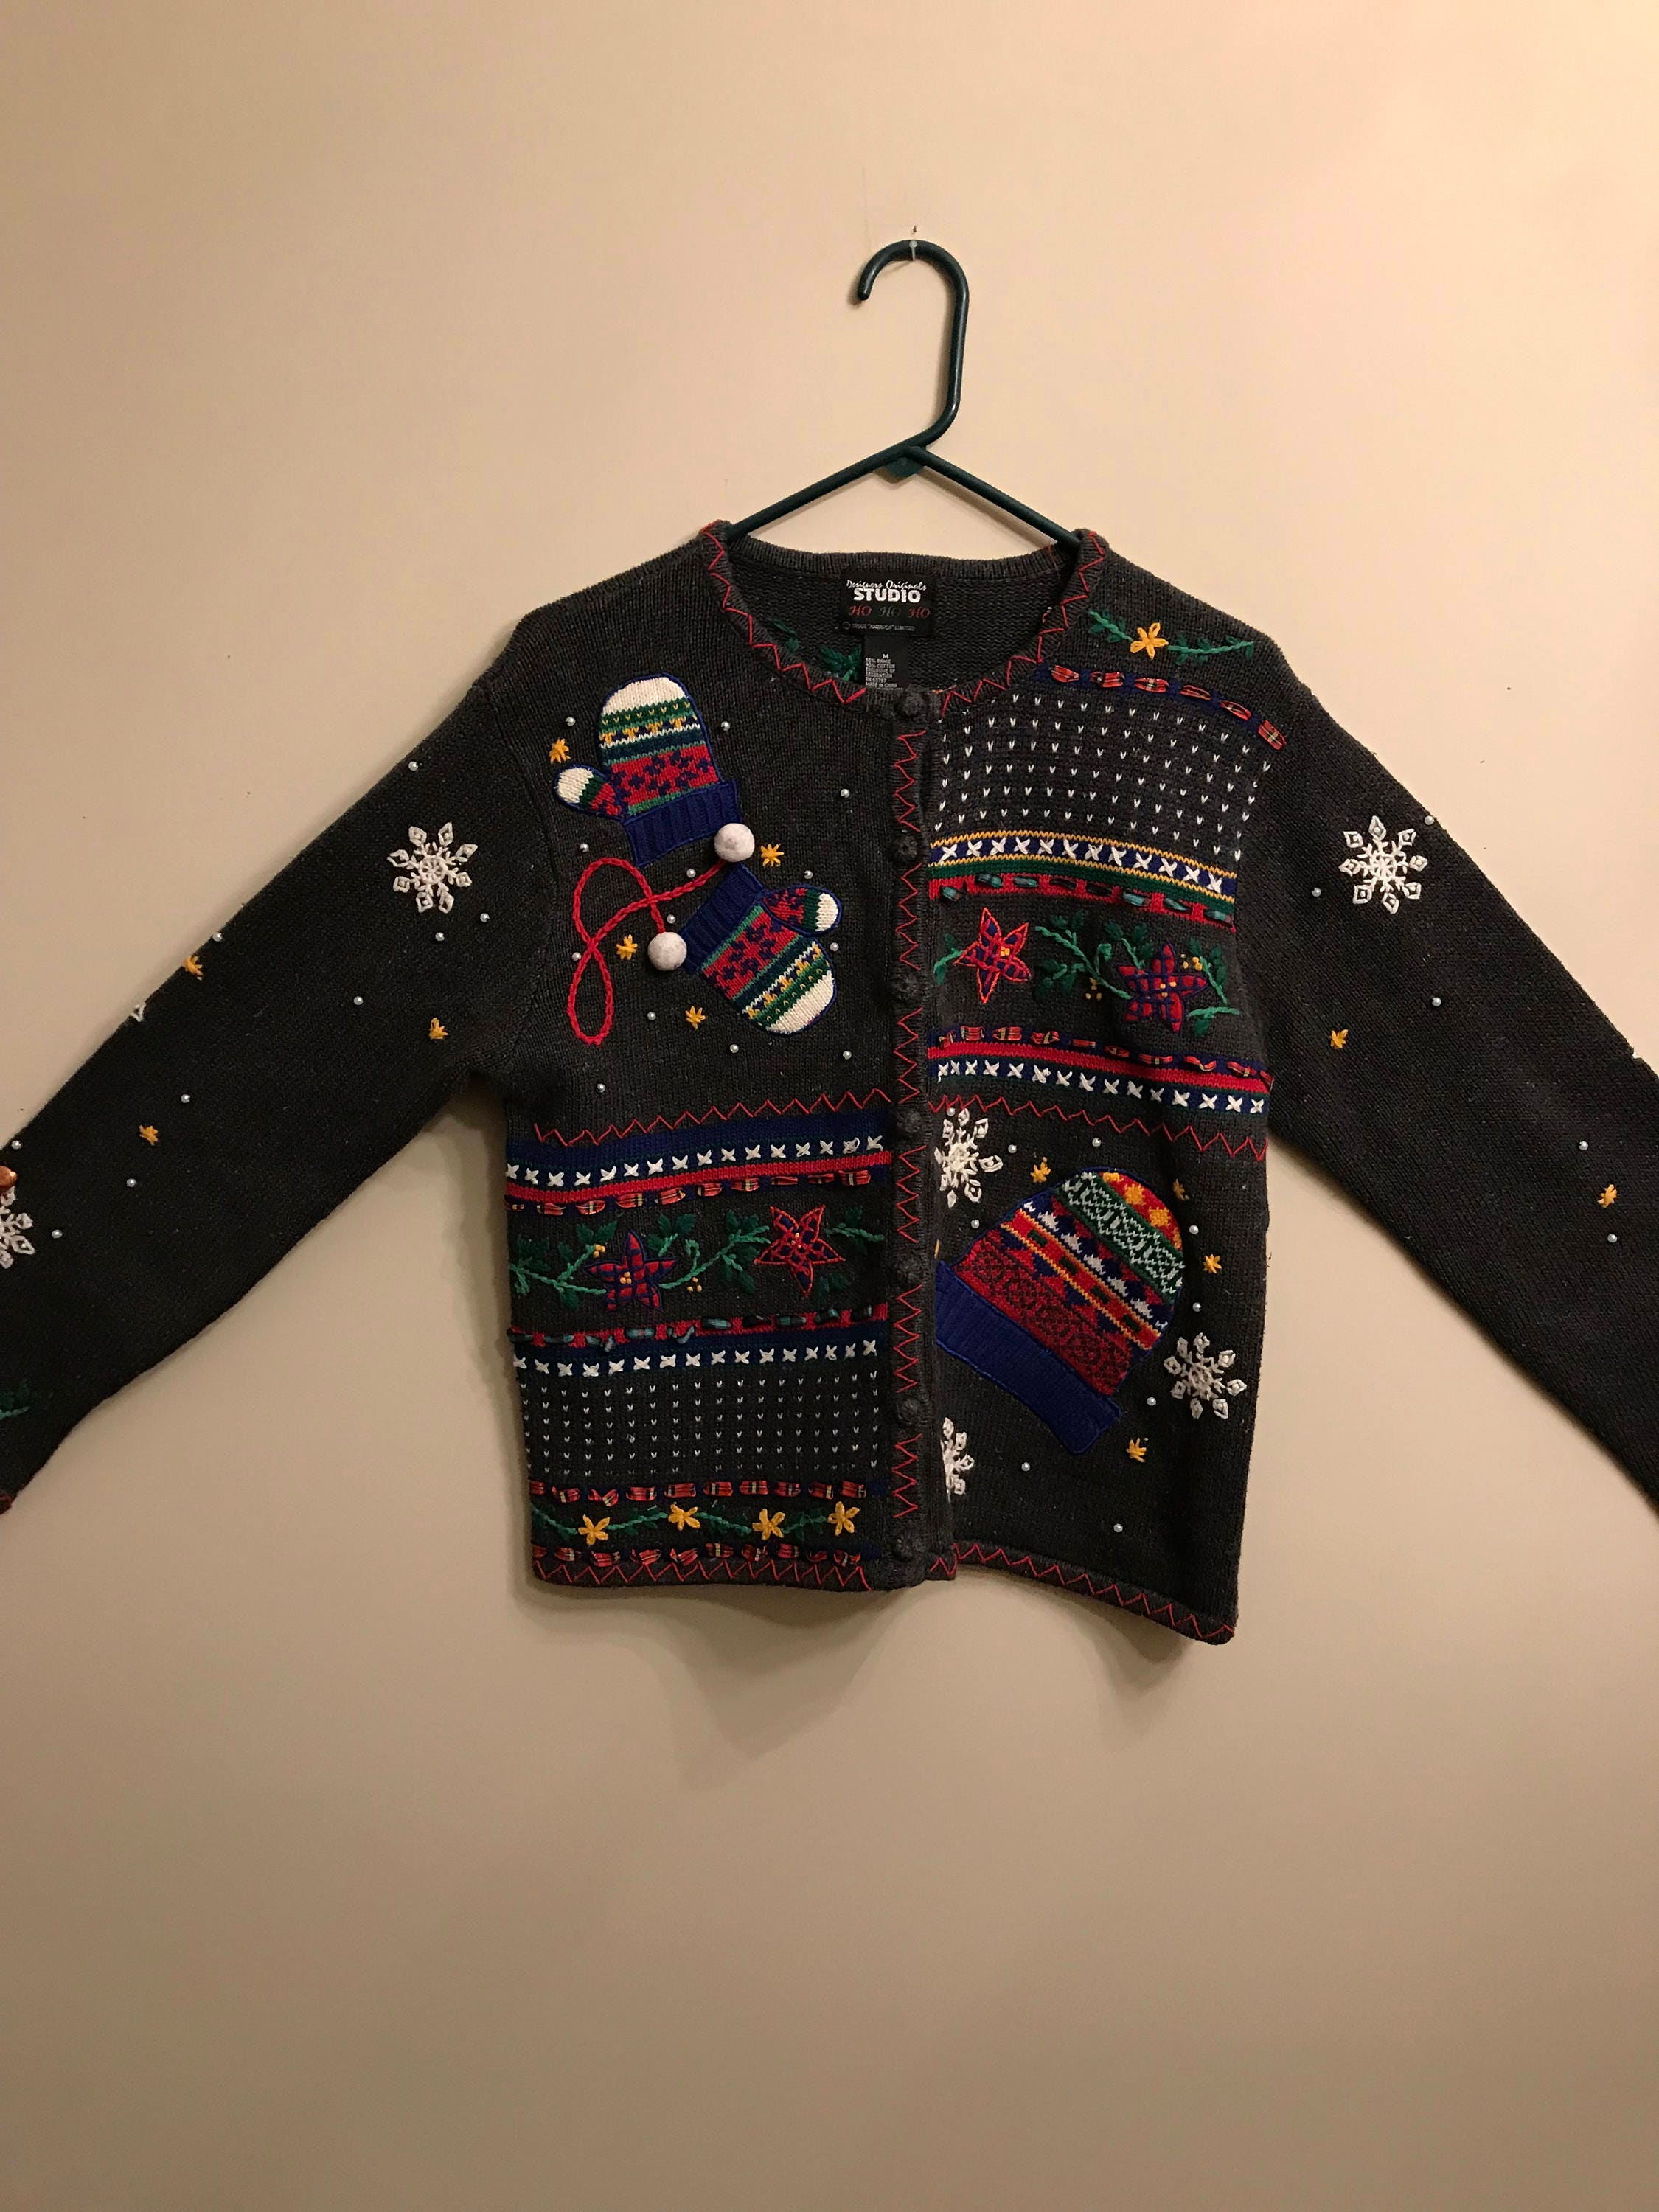 zoom - Unique Christmas Sweaters